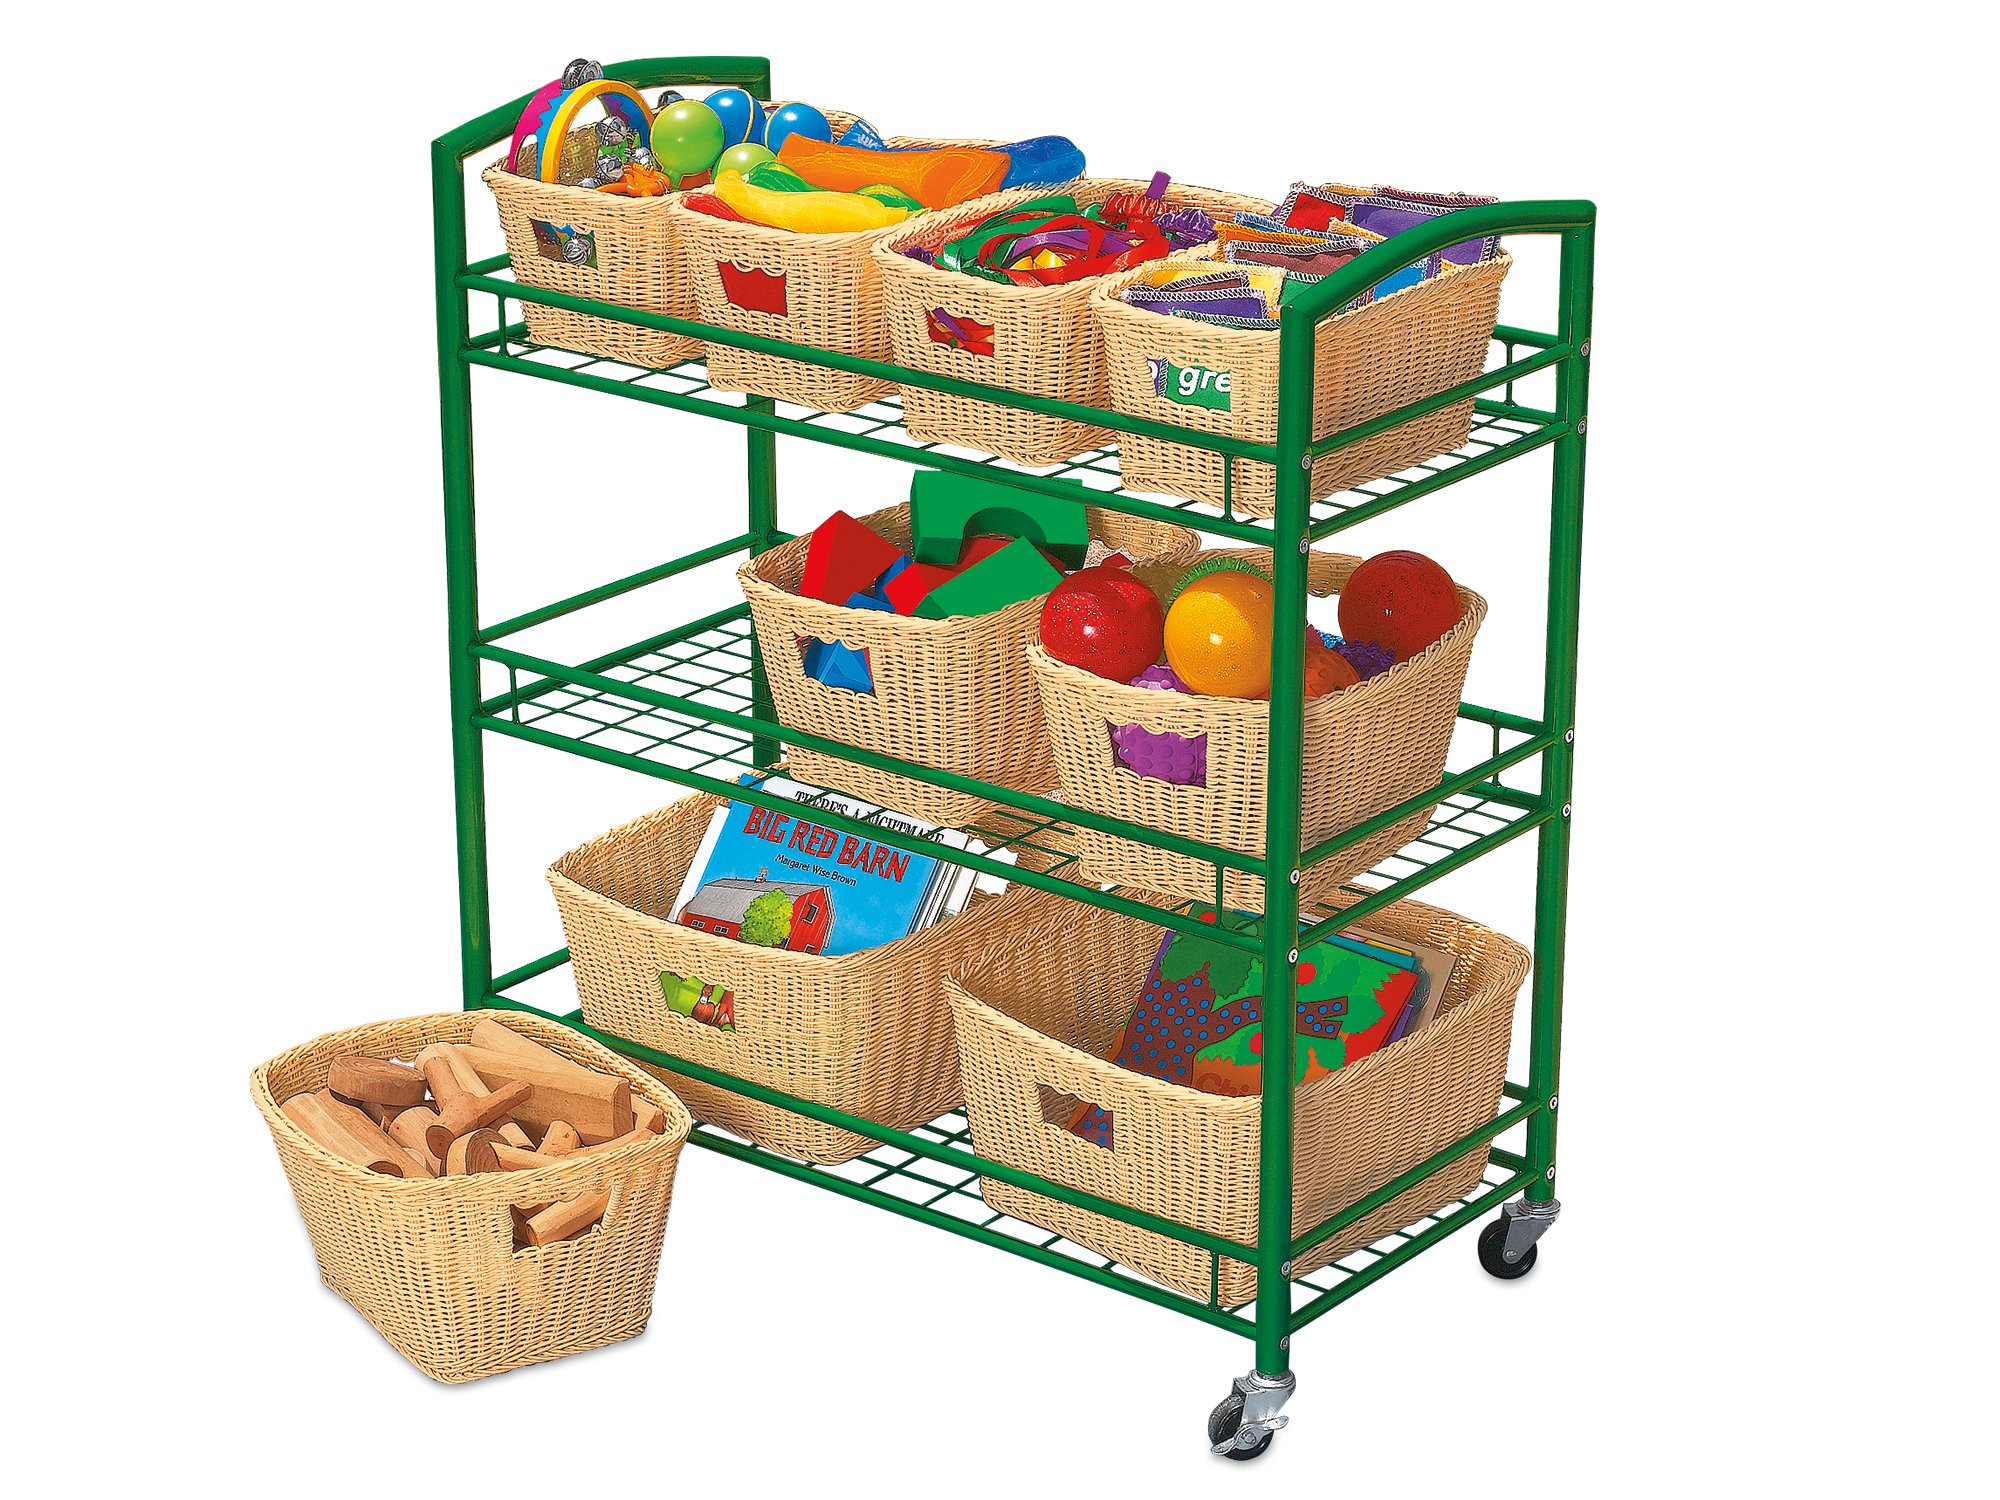 Lakeshore Outdoor Classroom Cart with Cover by Lakeshore Learning Materials